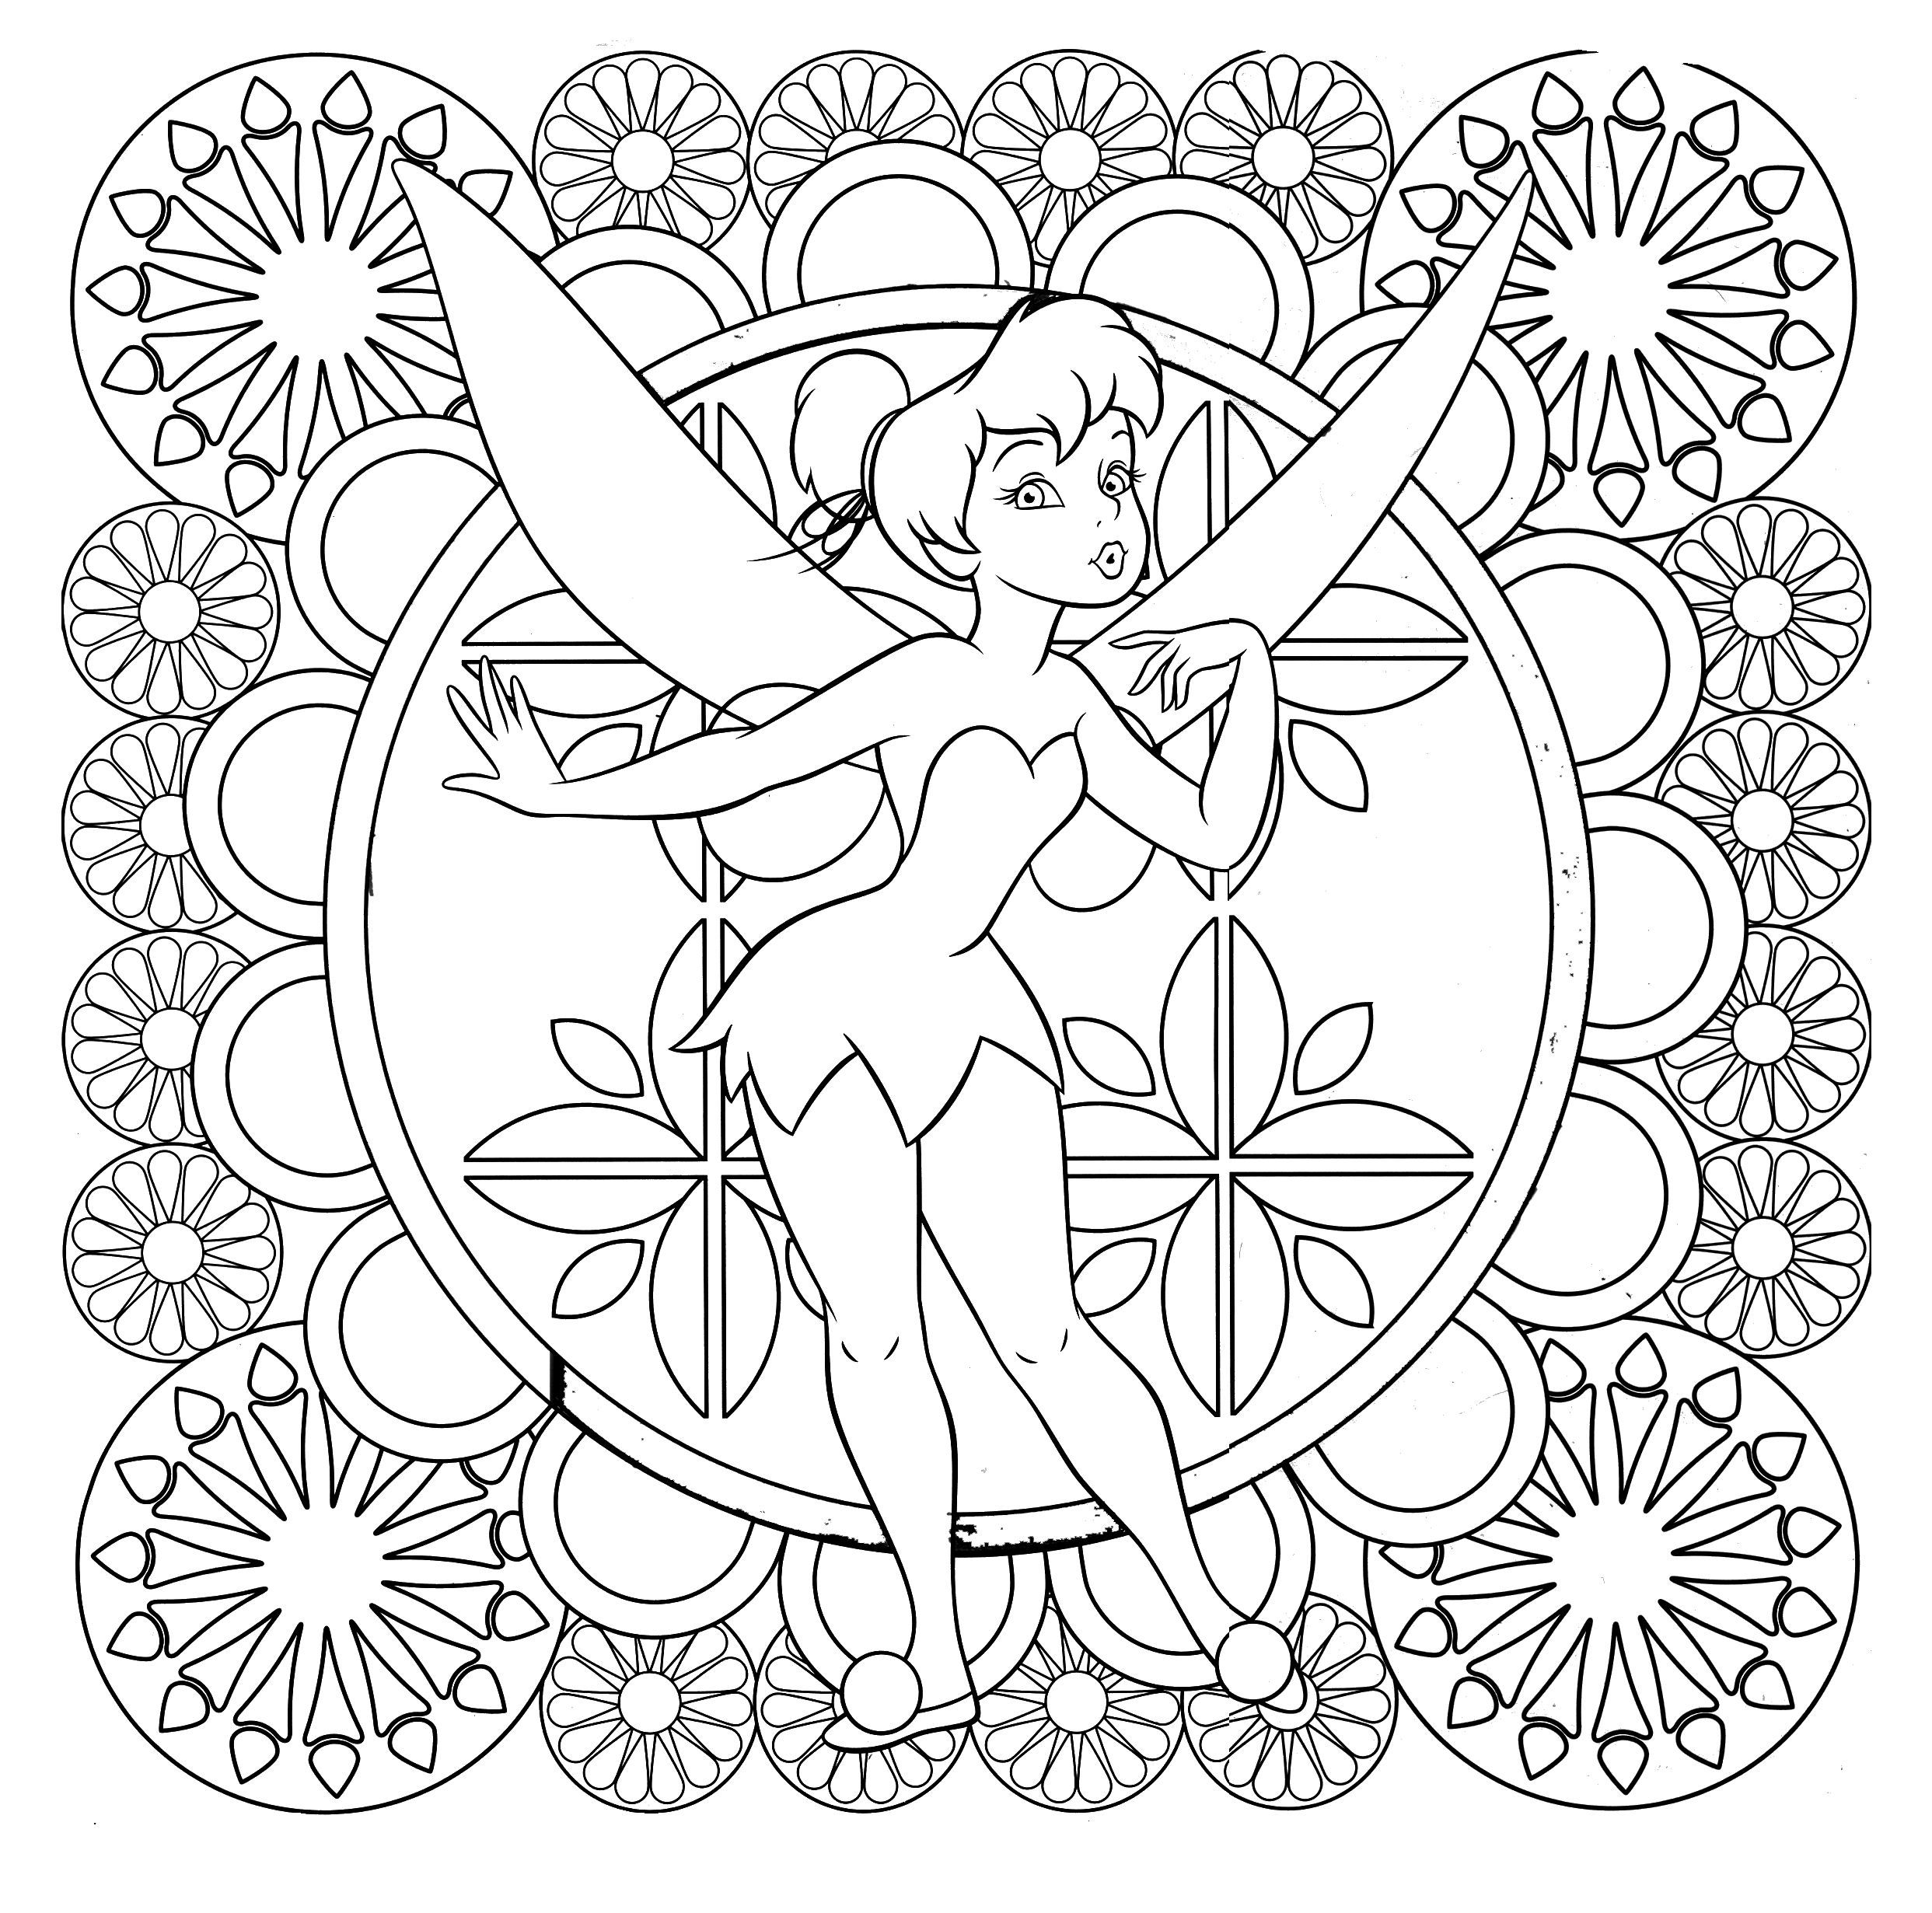 Tinkerbell Difficult Coloring Page   Adult Coloring Pages